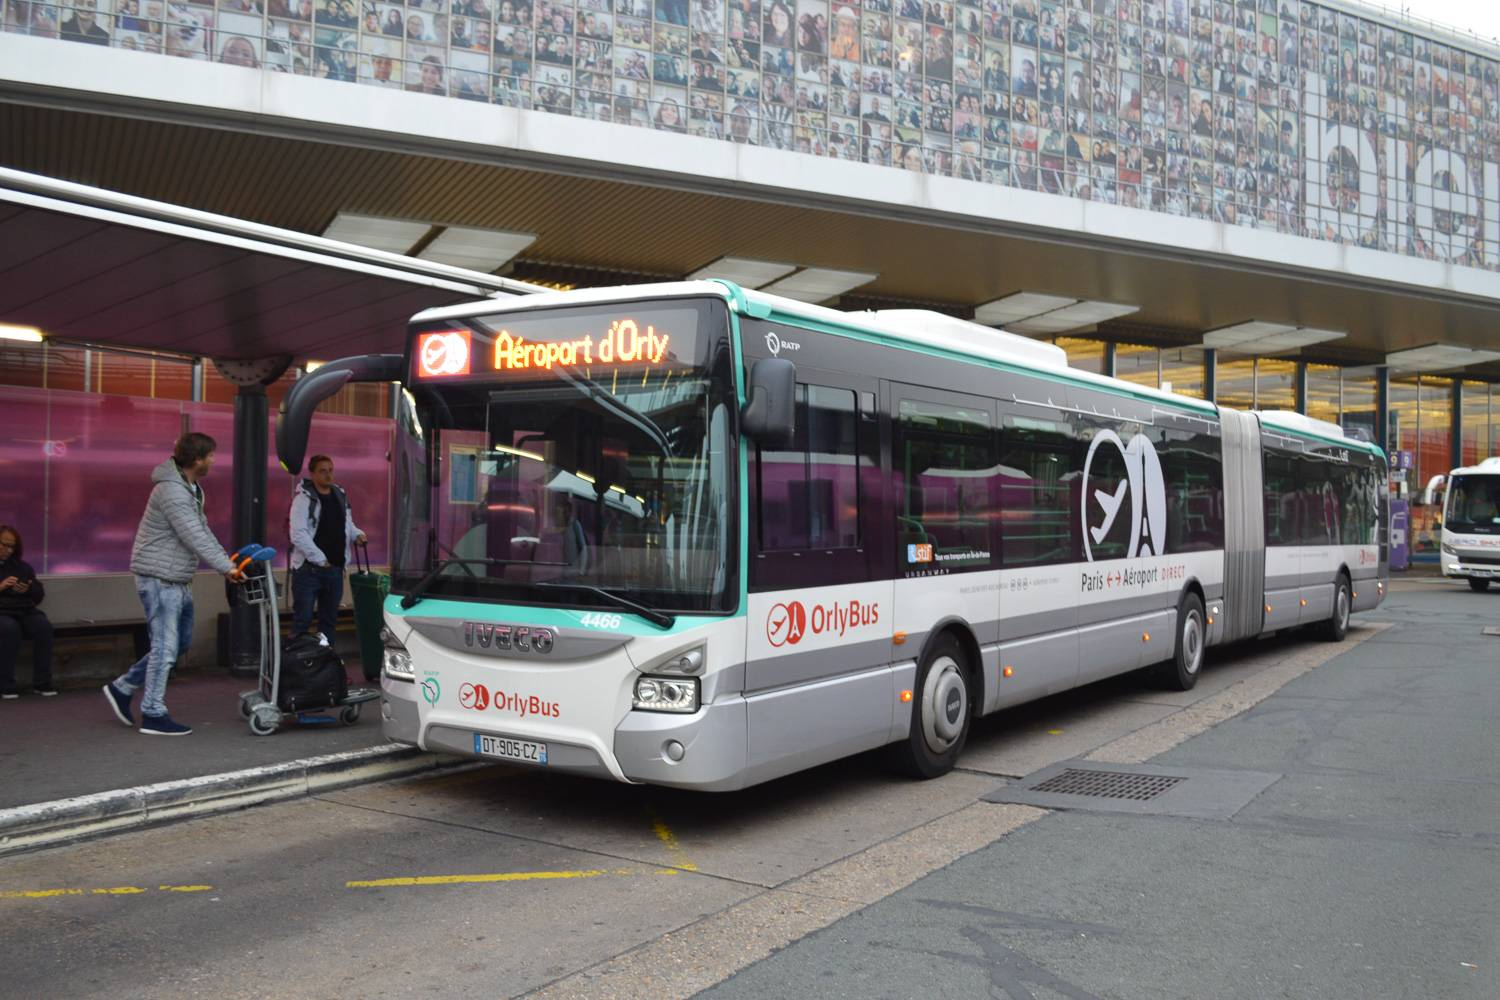 Image of an Orlybus picking up passengers at the curb of Orly Airport.